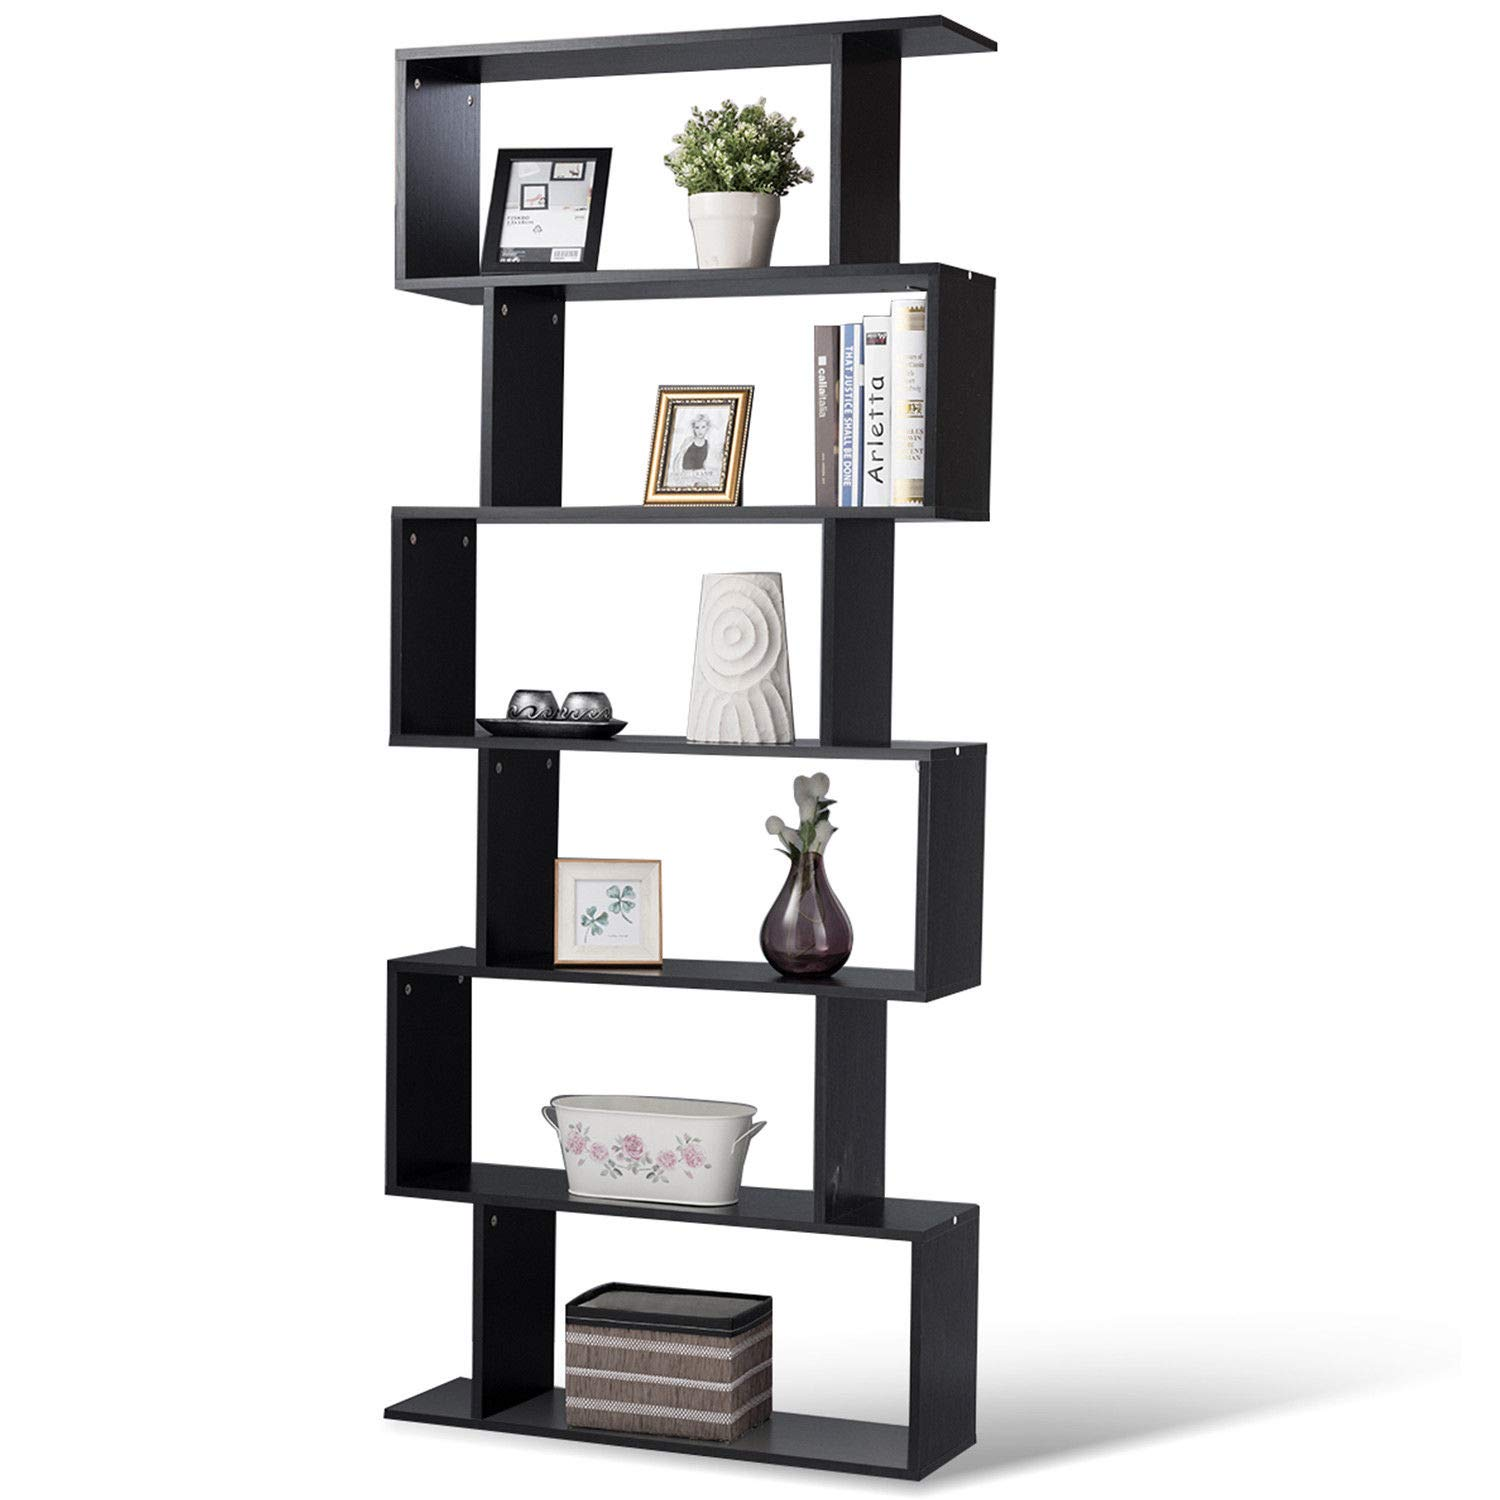 Tangkula 6 Shelf Bookcase, Modern S-Shaped Z-Shelf Style Bookshelf, Multifunctional Wooden Storage Display Stand Shelf for Living Room, Home Office, Bedroom, Bookcase Storage Shelf Black